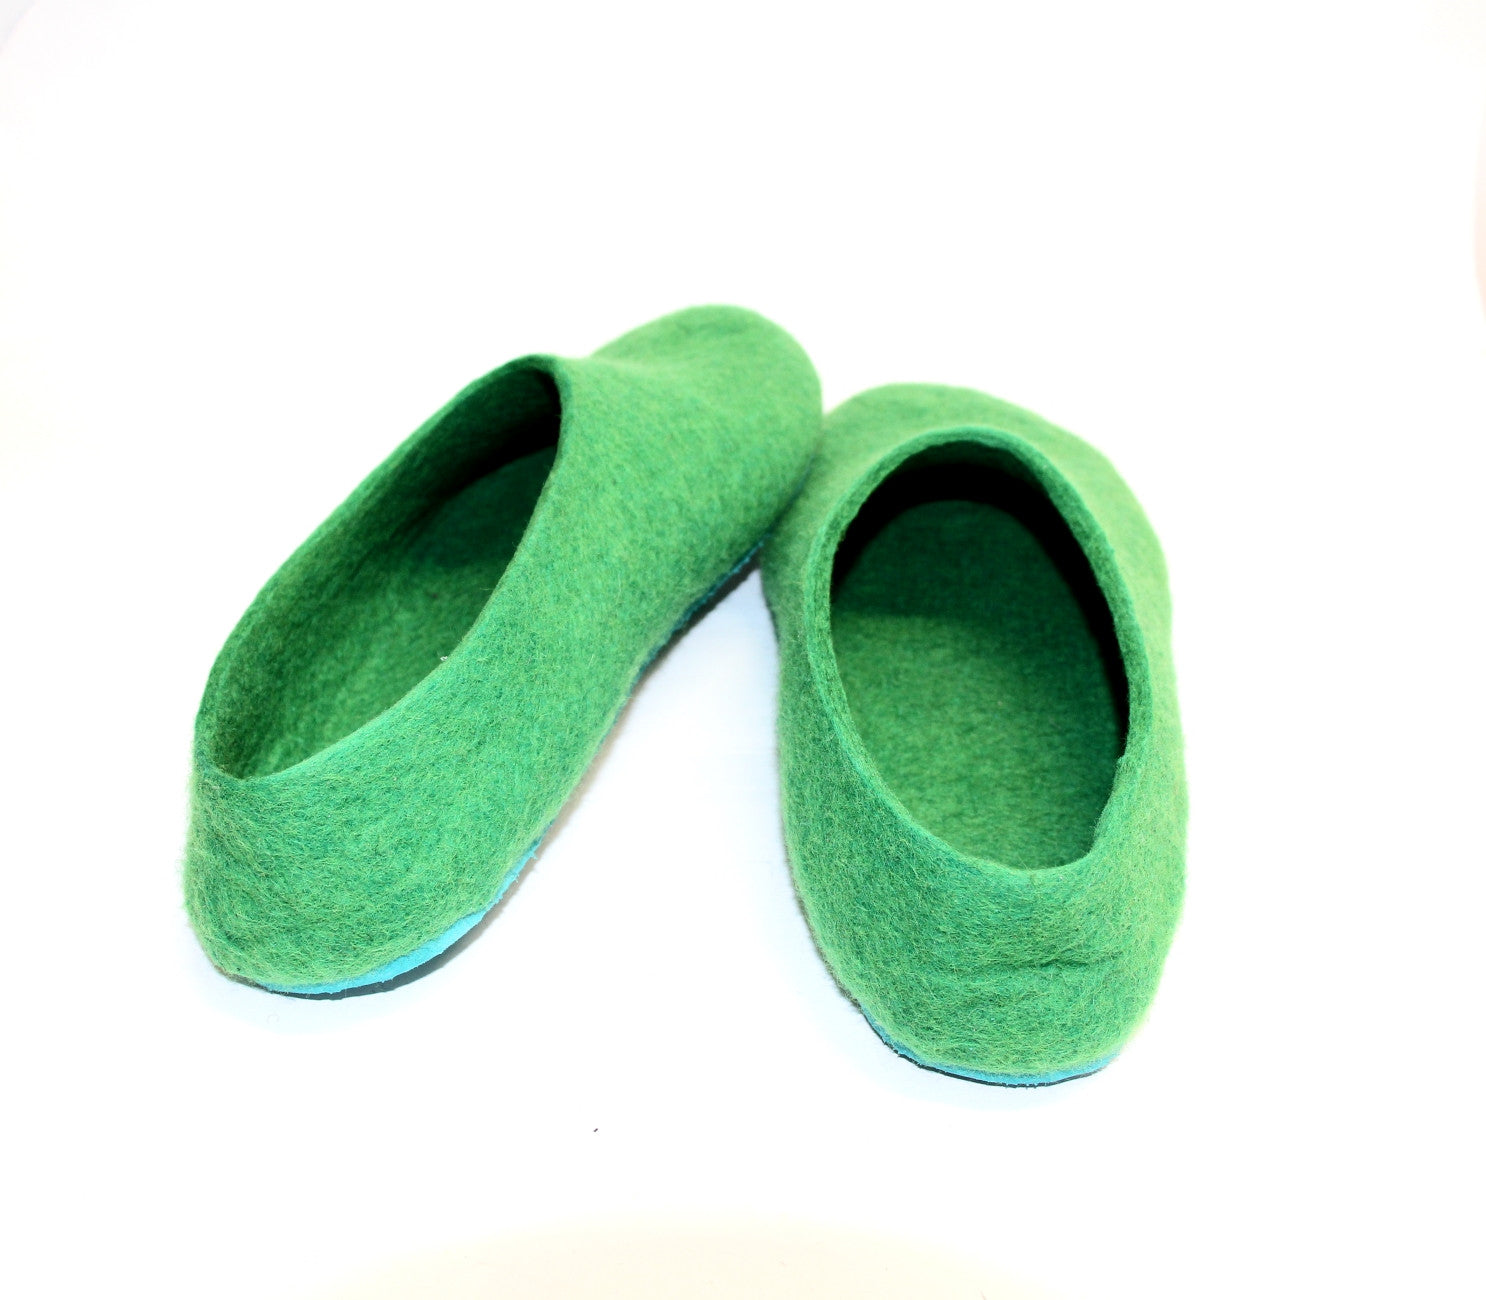 Mens Felt Slippers Green Tree Top Contrast Sole - Wool Walker  - 4